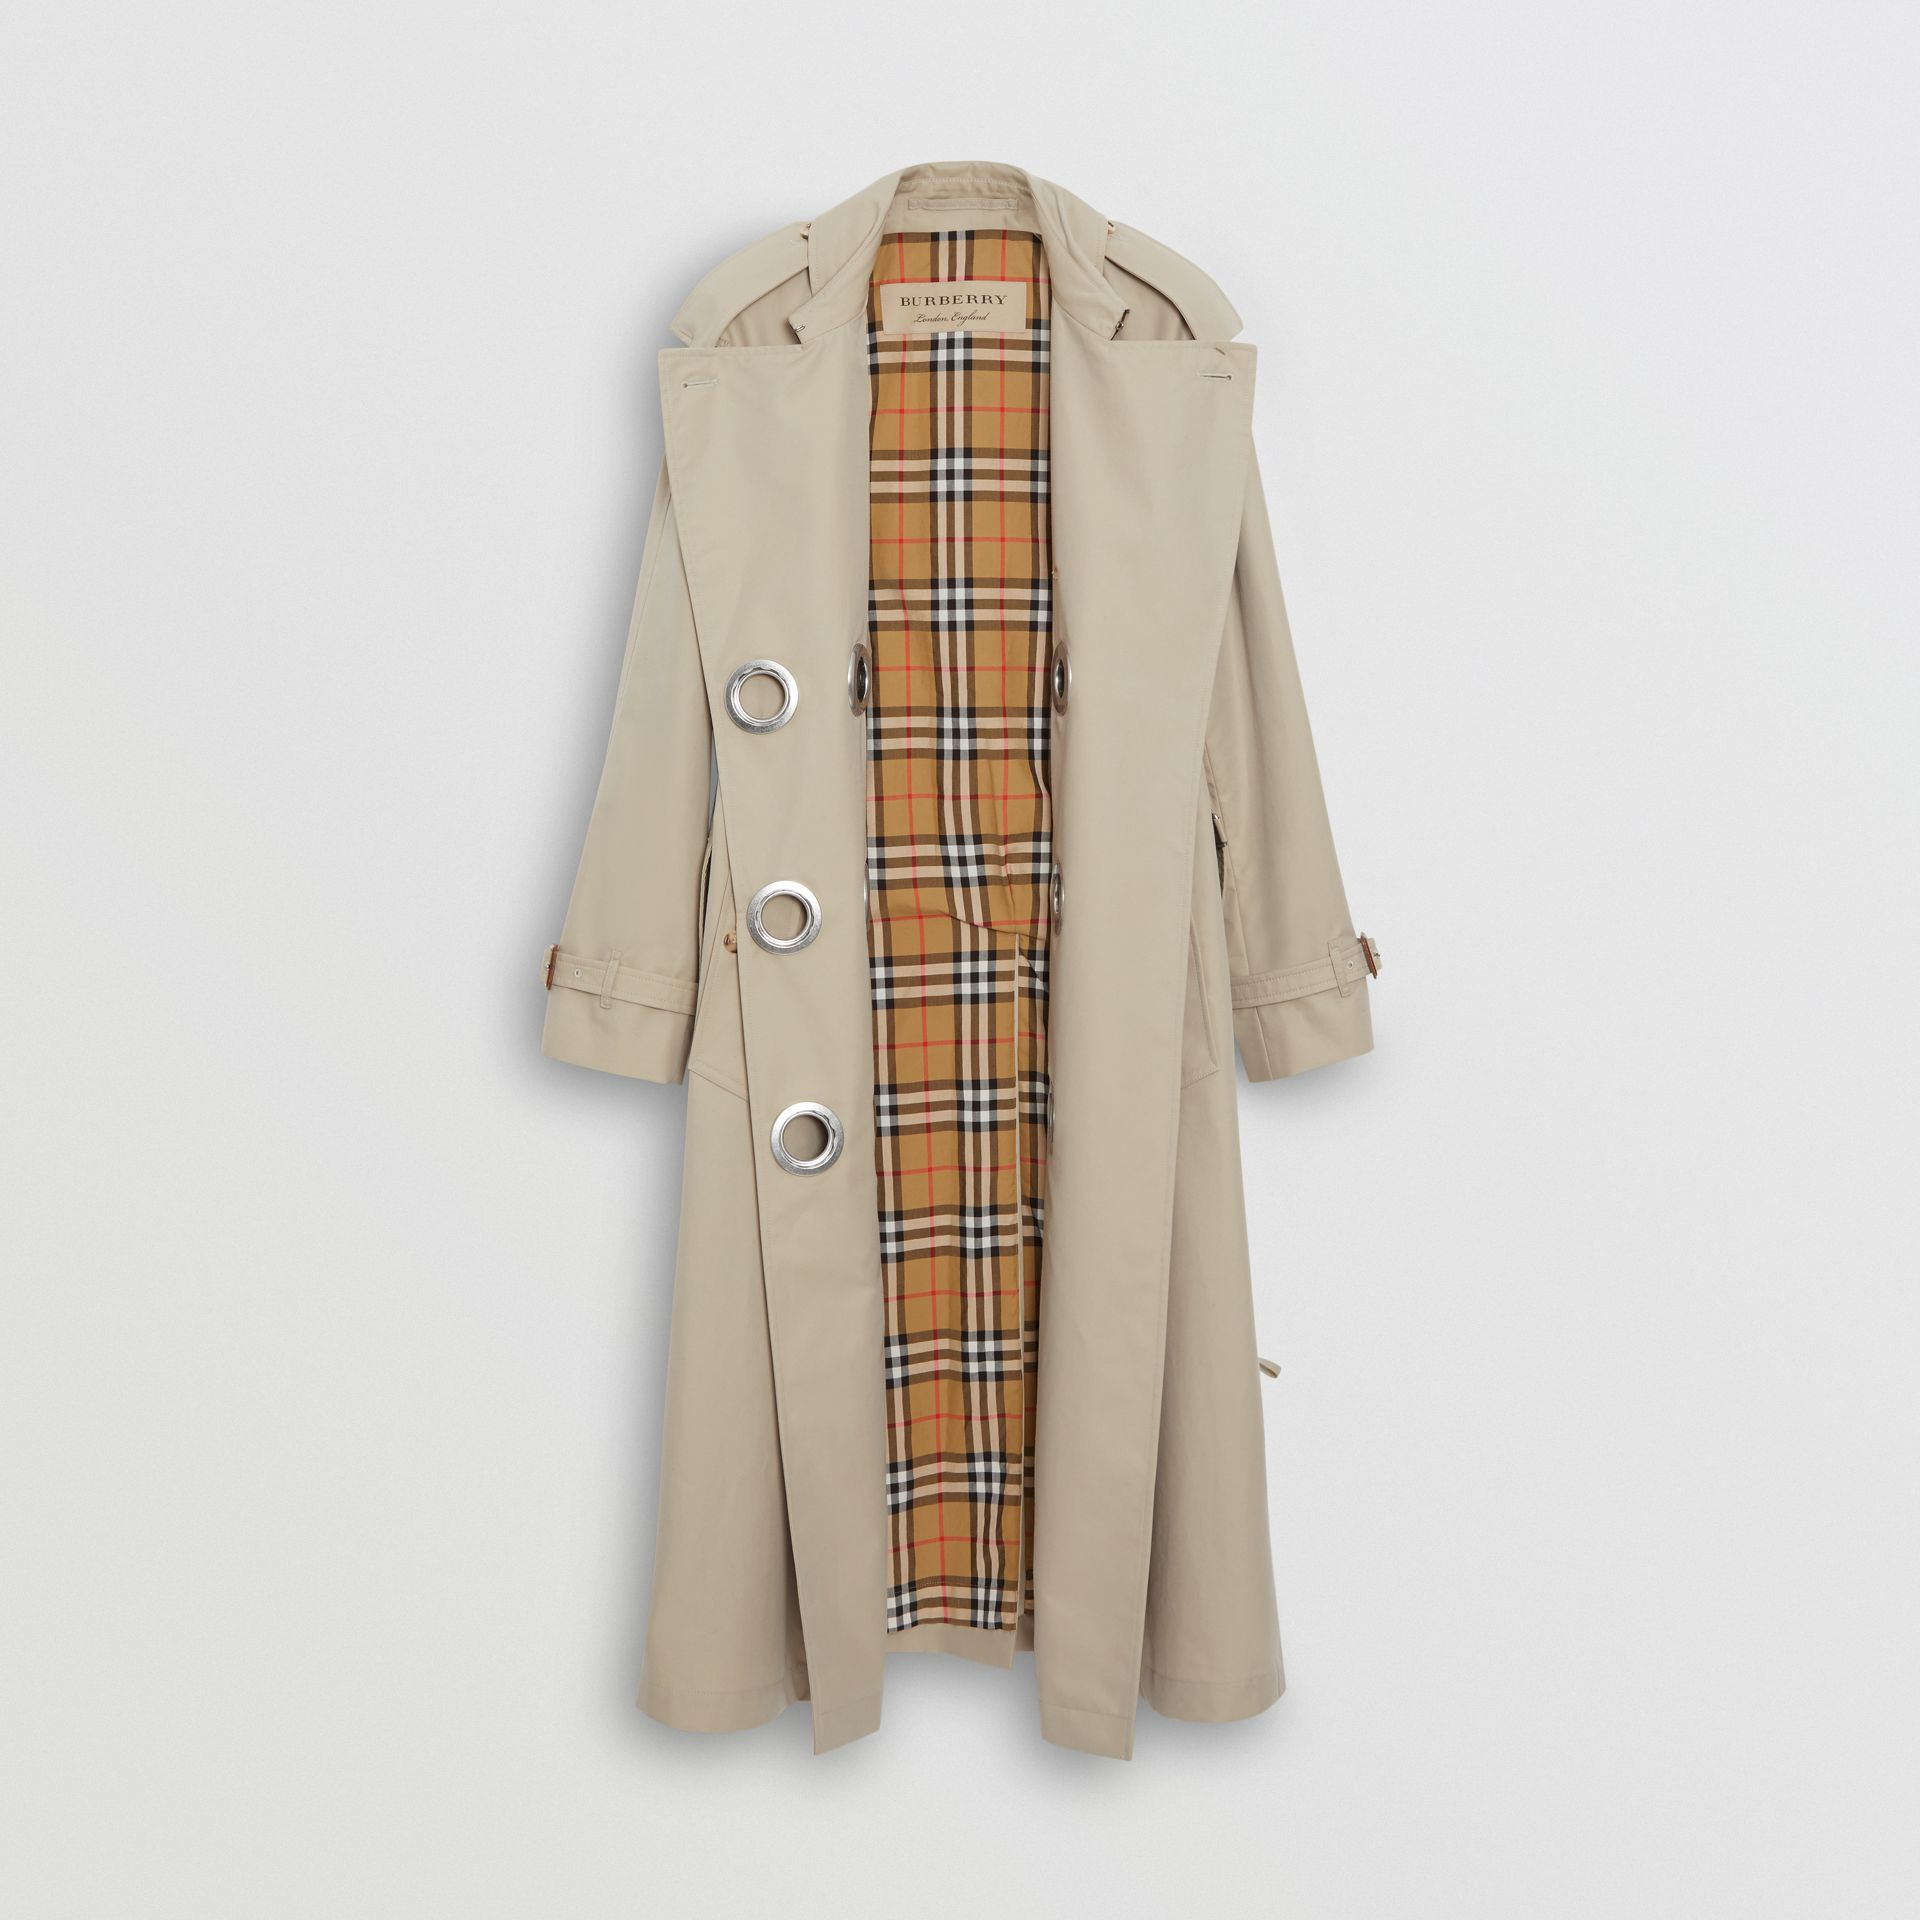 Grommet Detail Cotton Gabardine Trench Coat in Stone - Women | Burberry United Kingdom - gallery image 8